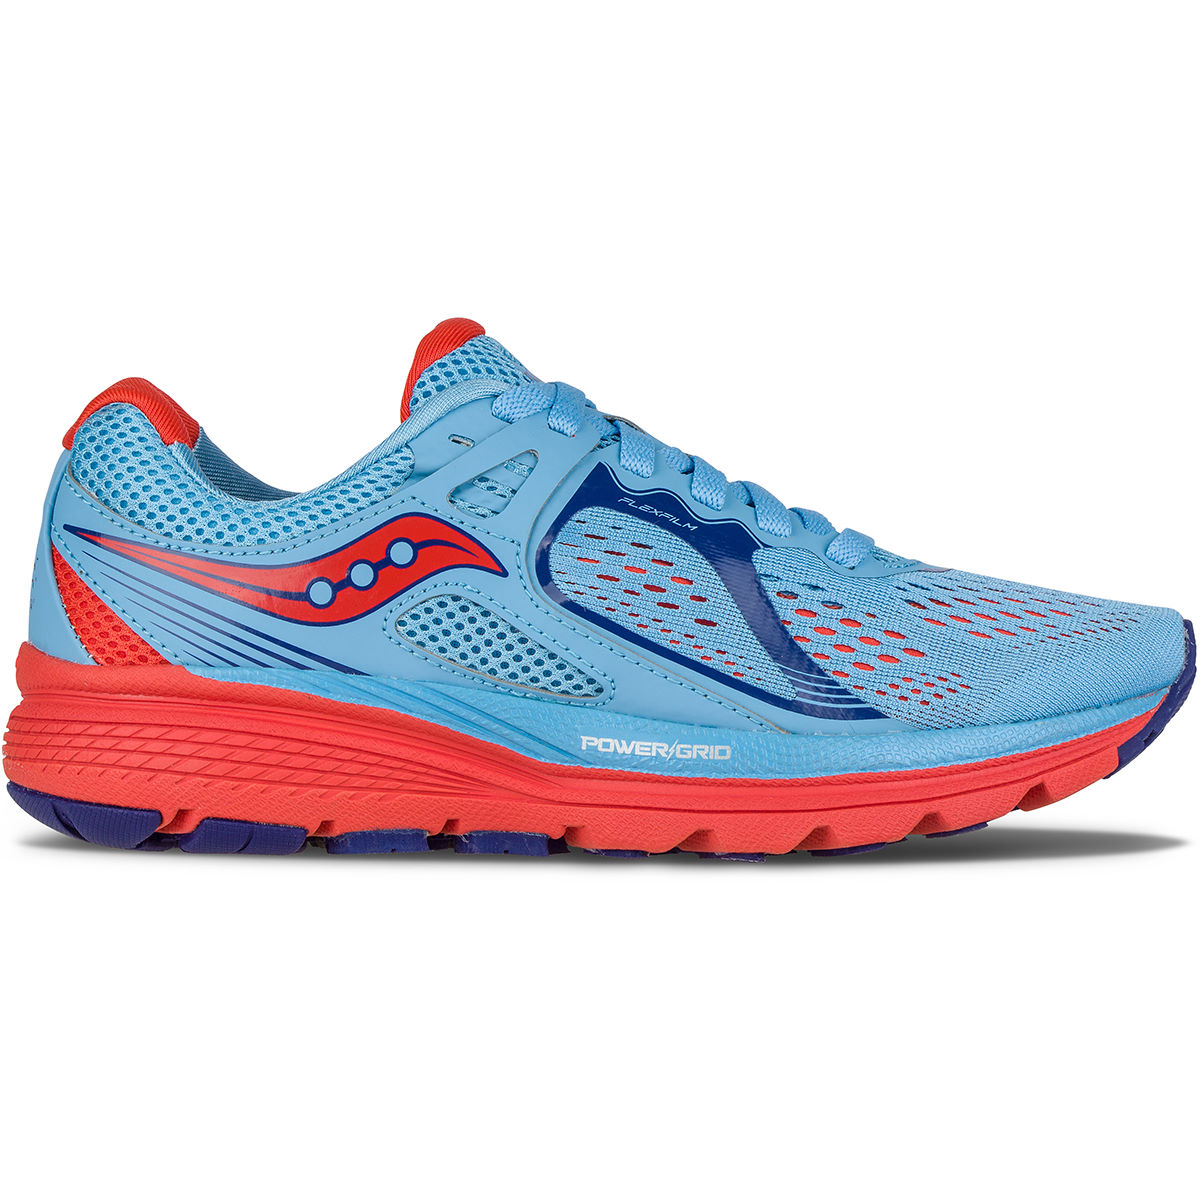 Saucony Womens Valor Shoes (AW16)   Stability Running Shoes